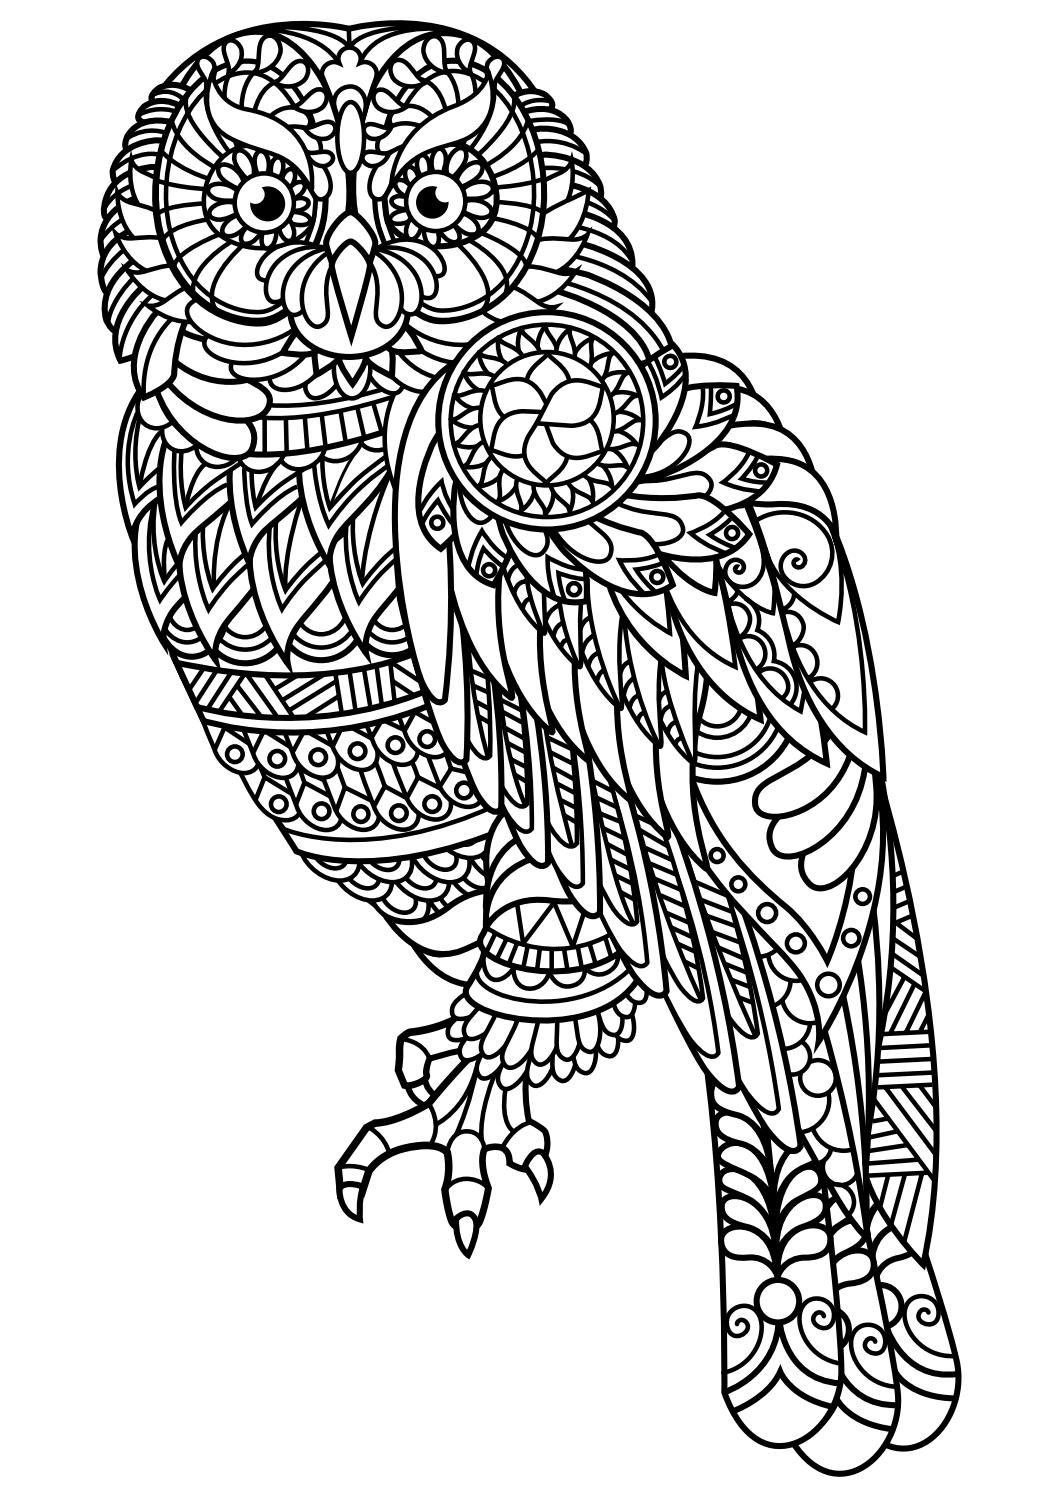 Animal coloring pages pdf Adult coloring Dog cat and Coloring books